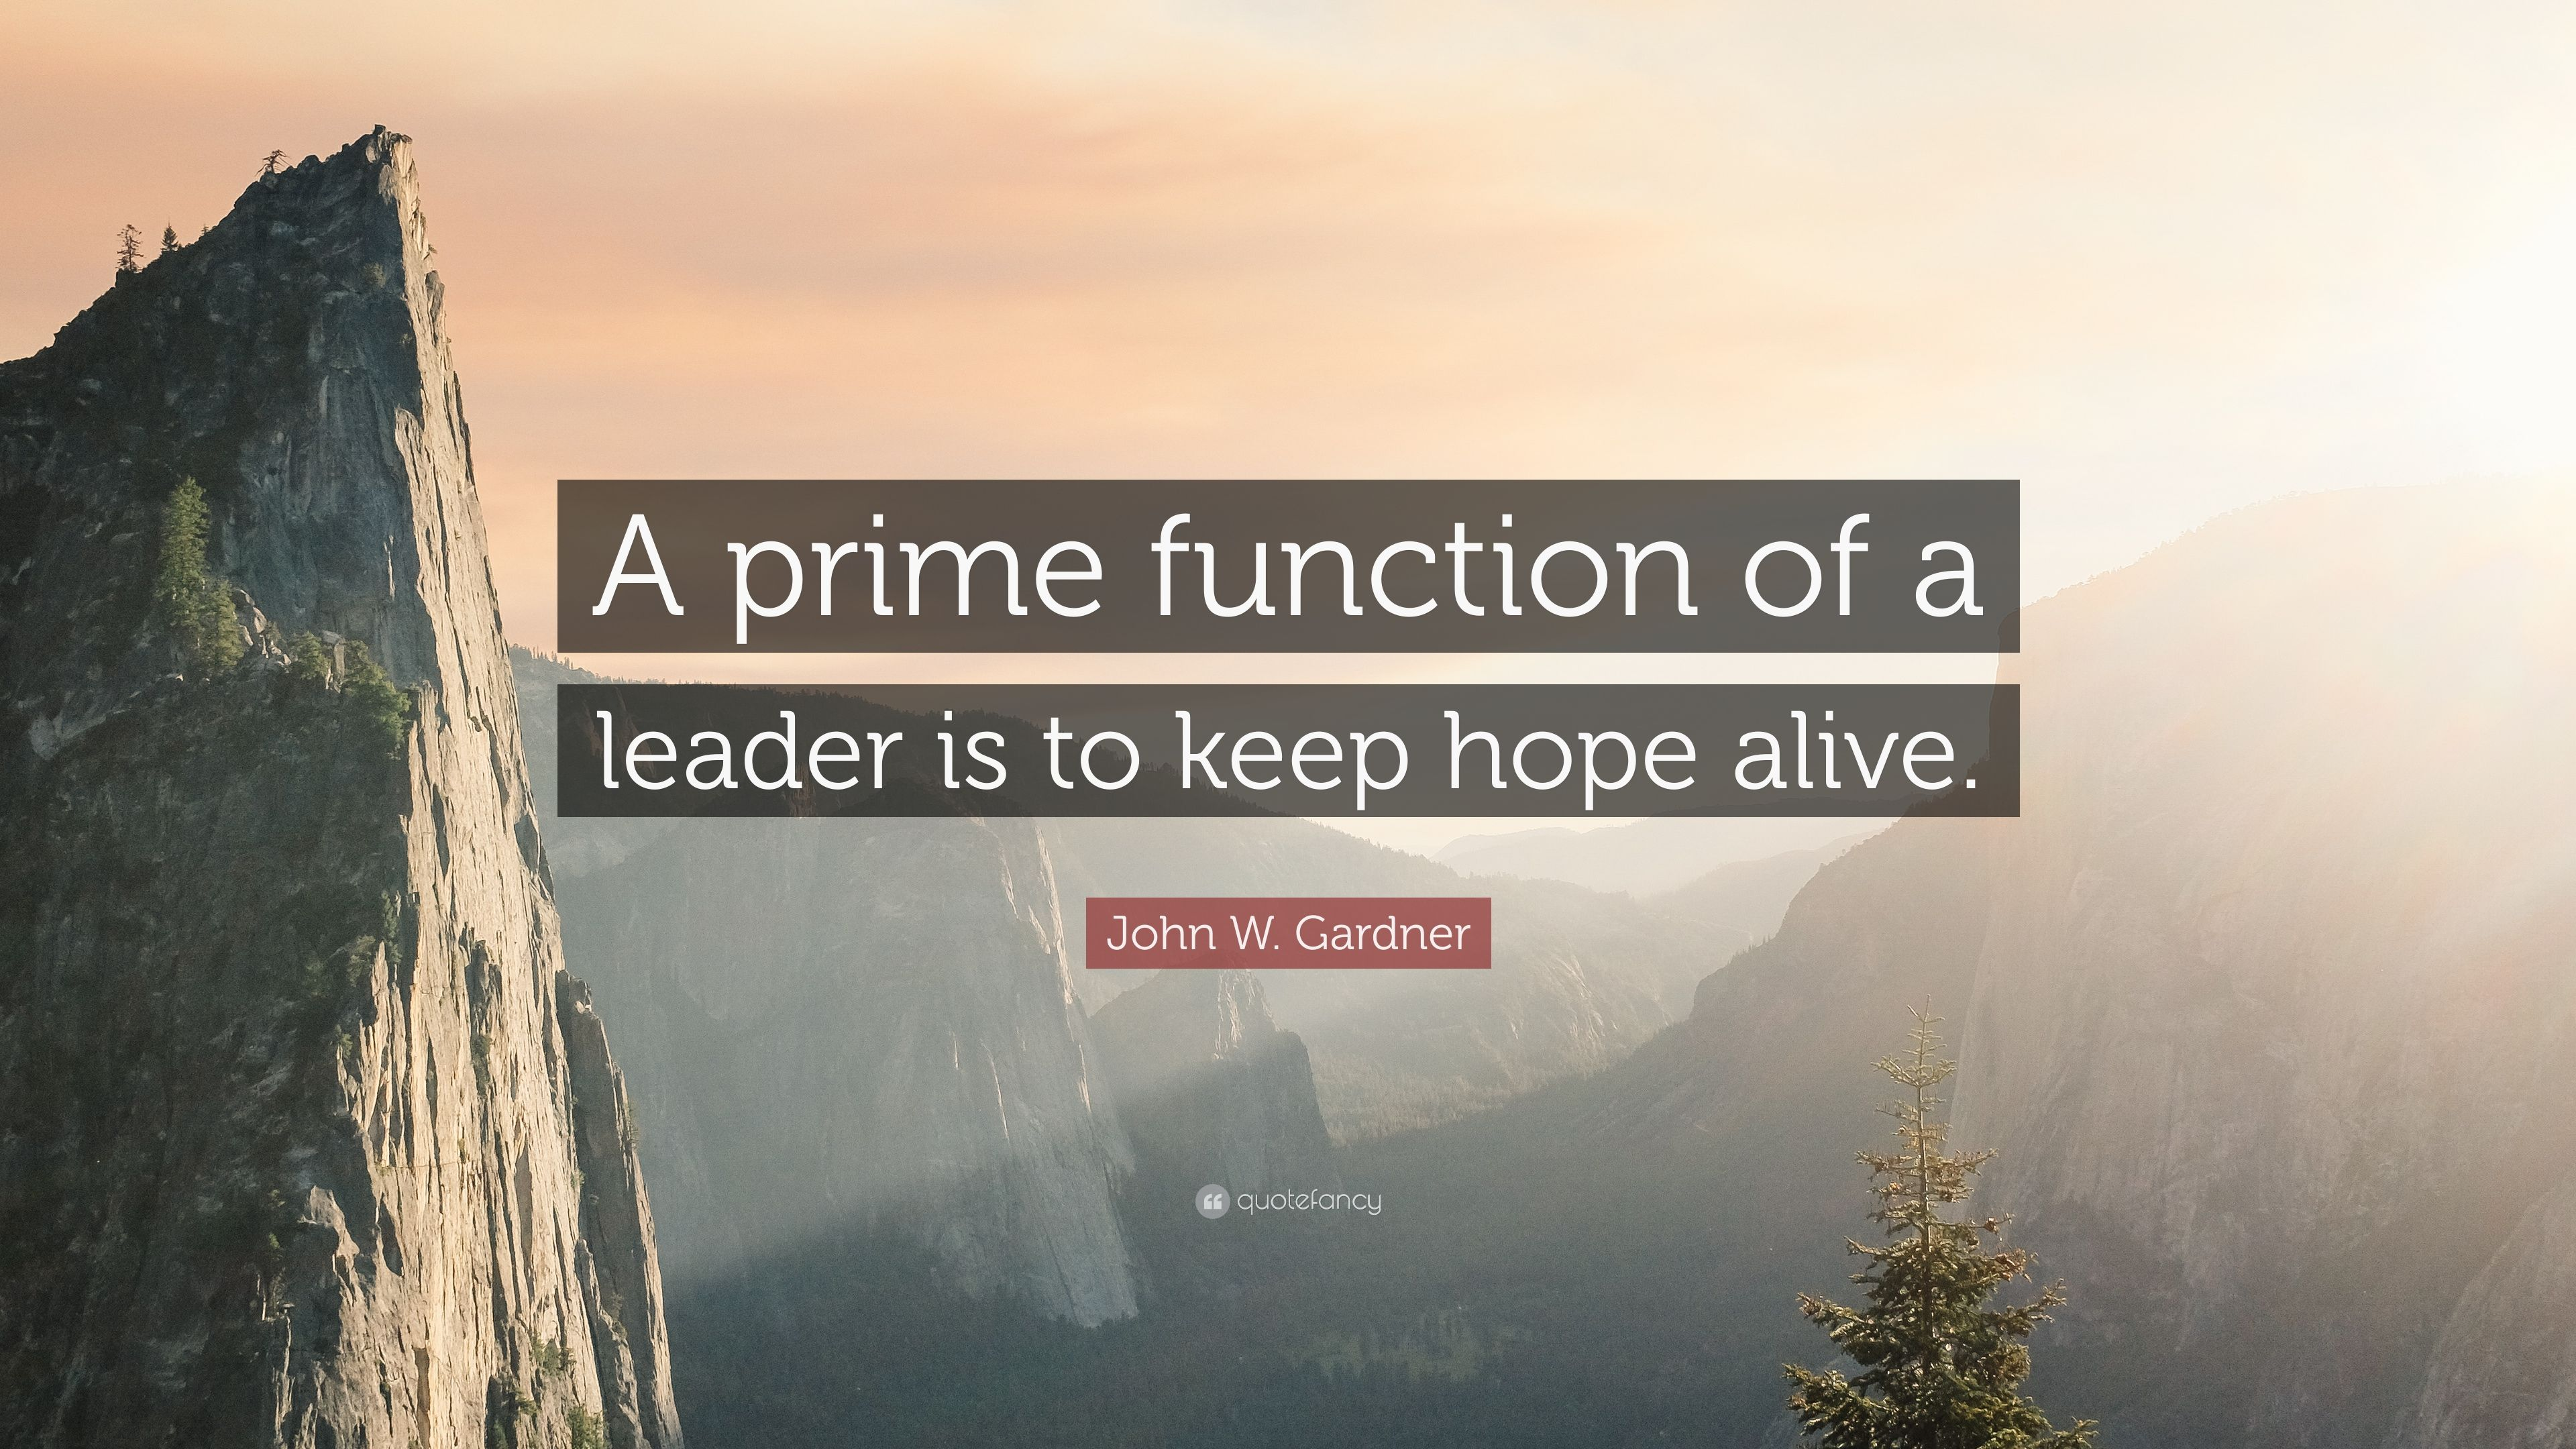 john w gardner quote a prime function of a leader is to keep